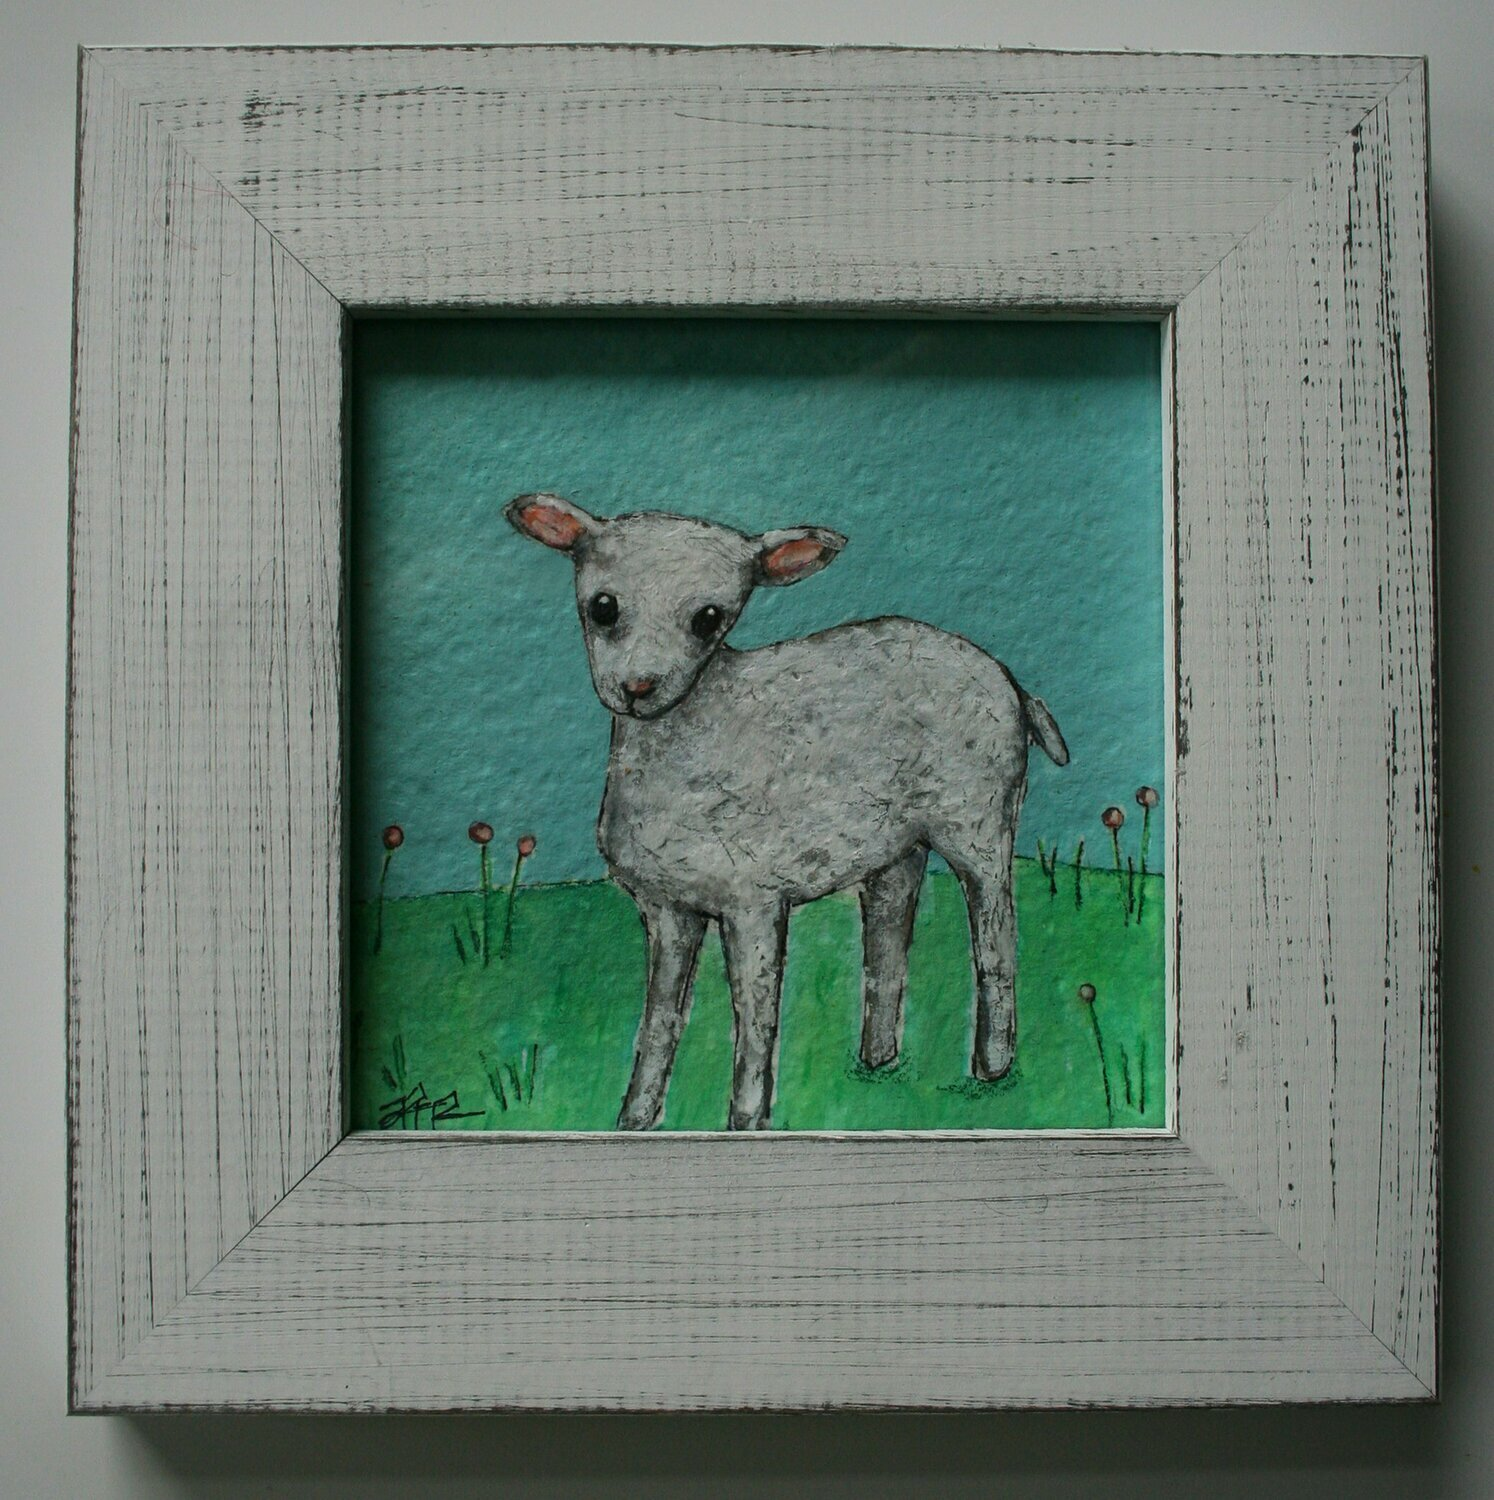 "baby sheep lamb in grass with flowers original a2n2koon 5x5"" painting on paper wall art framed cute artwork 7x7"" distressed white wood frame"